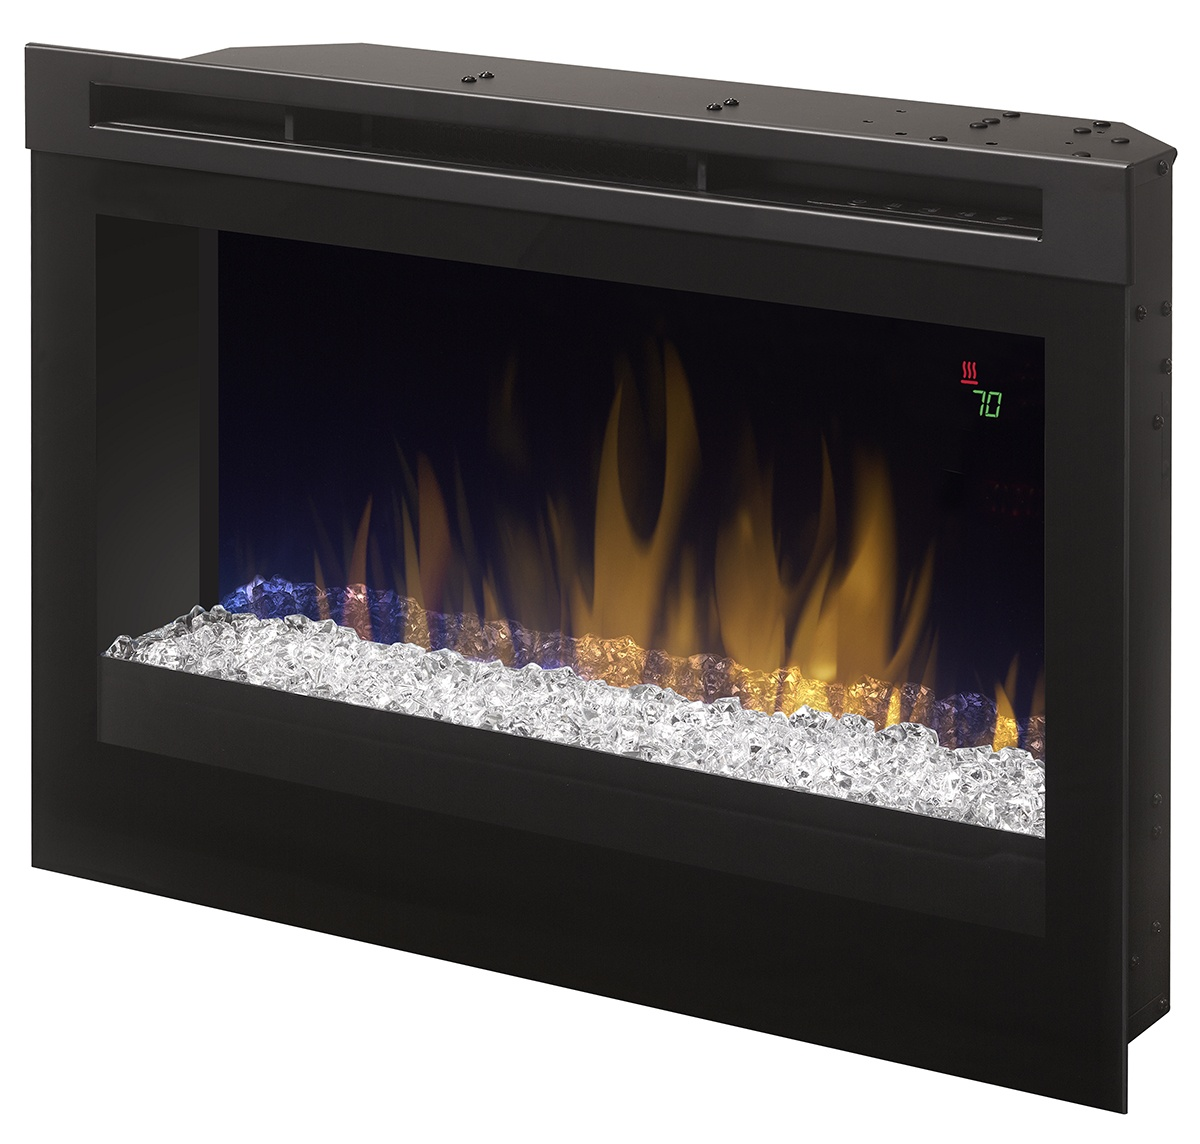 Electric Fireplaces Dimplex Dimplex 25 Quot Dfr2551g Electric Fireplace Insert Electric